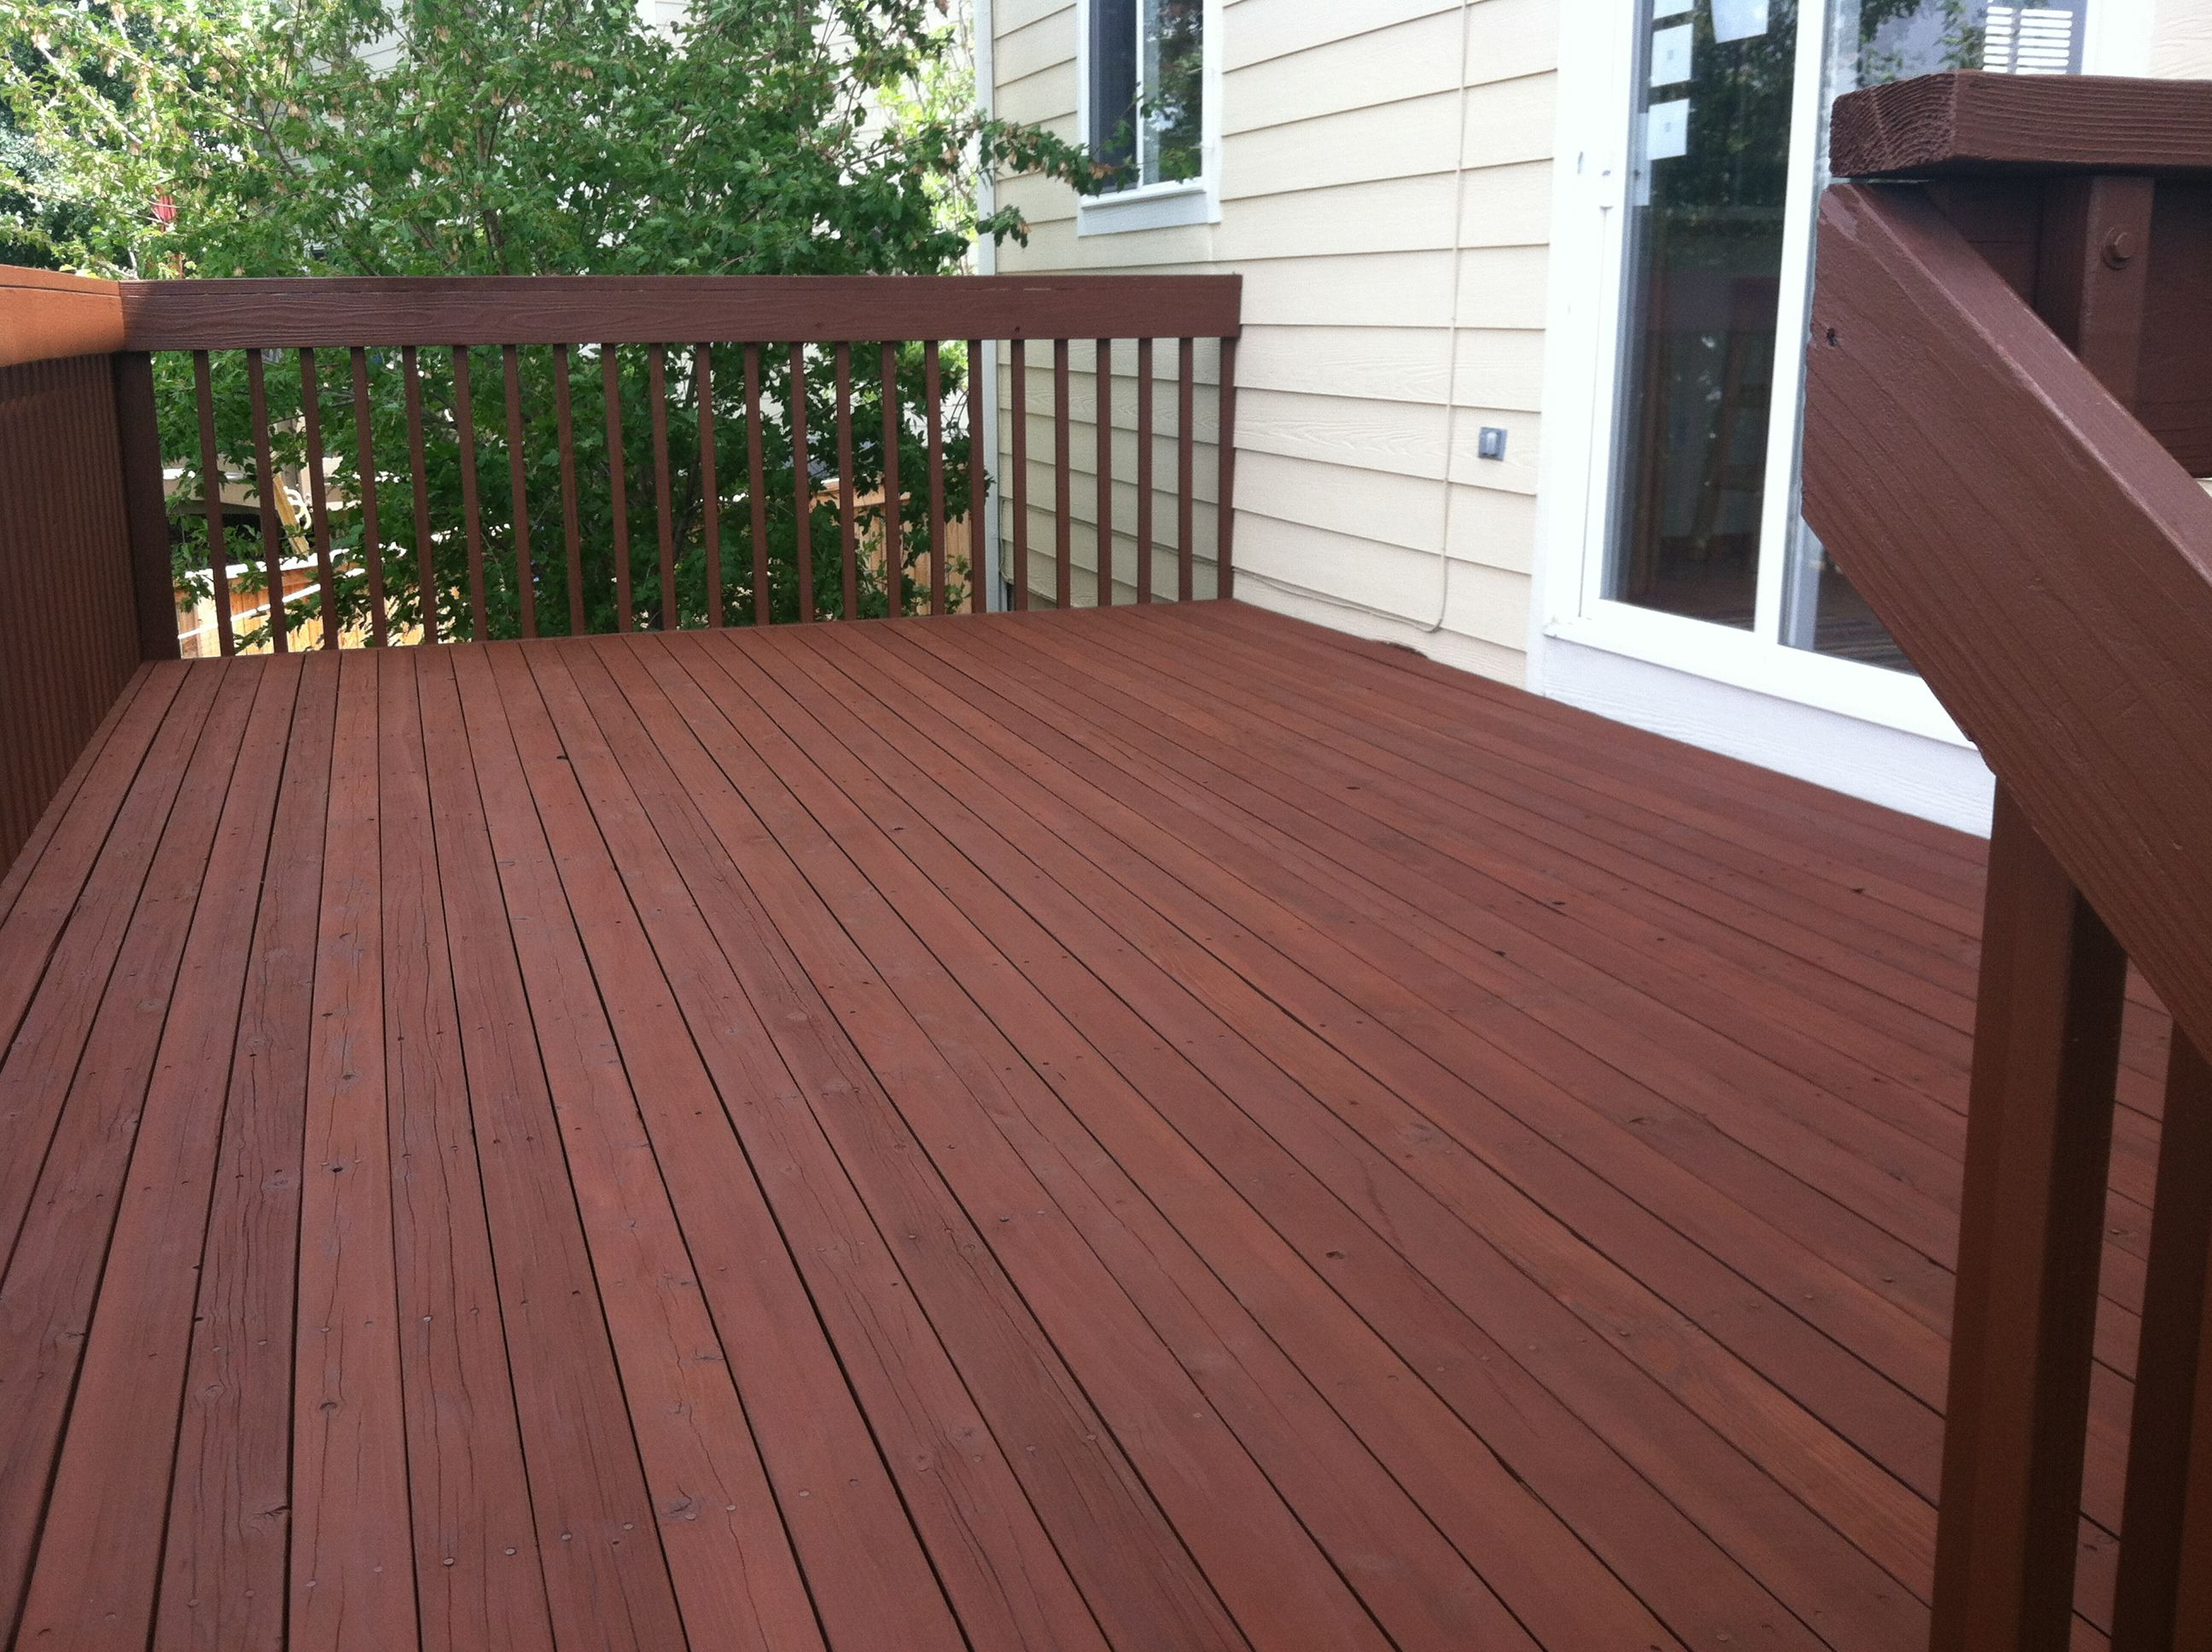 Cabot Deck Stain In Semi Solid Oak Brown Front Porch